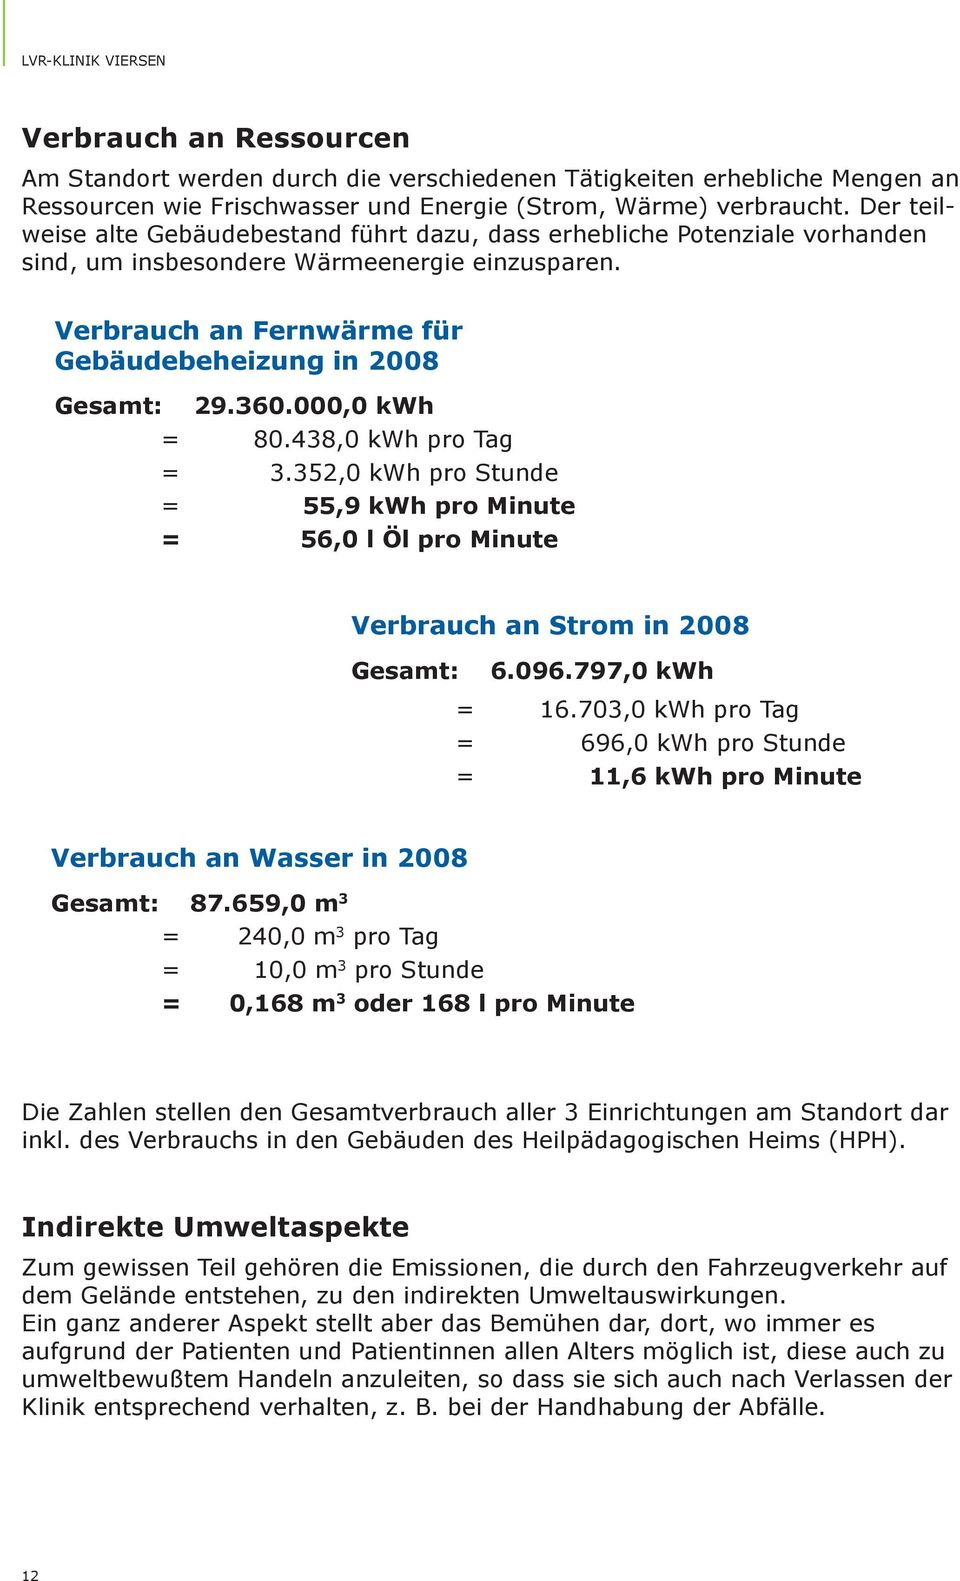 000,0 kwh = 80.438,0 kwh pro Tag = 3.352,0 kwh pro Stunde = 55,9 kwh pro Minute = 56,0 l Öl pro Minute Verbrauch an Strom in 2008 Gesamt: 6.096.797,0 kwh = 16.